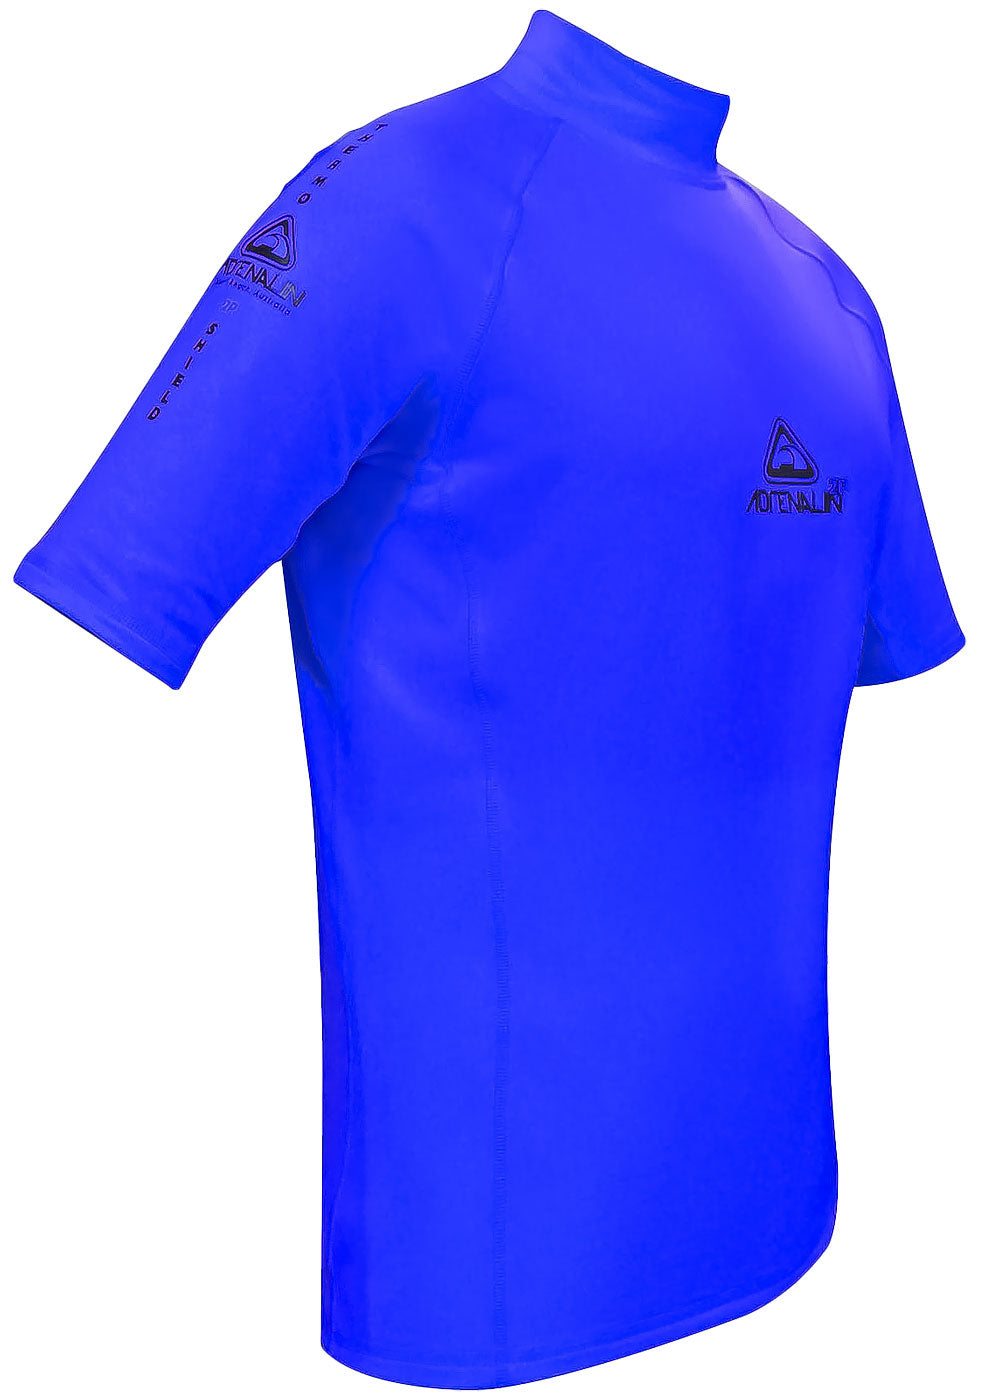 Adrenalin 2P Thermal short Sleeve Rash Guard blue buy online rashie australia